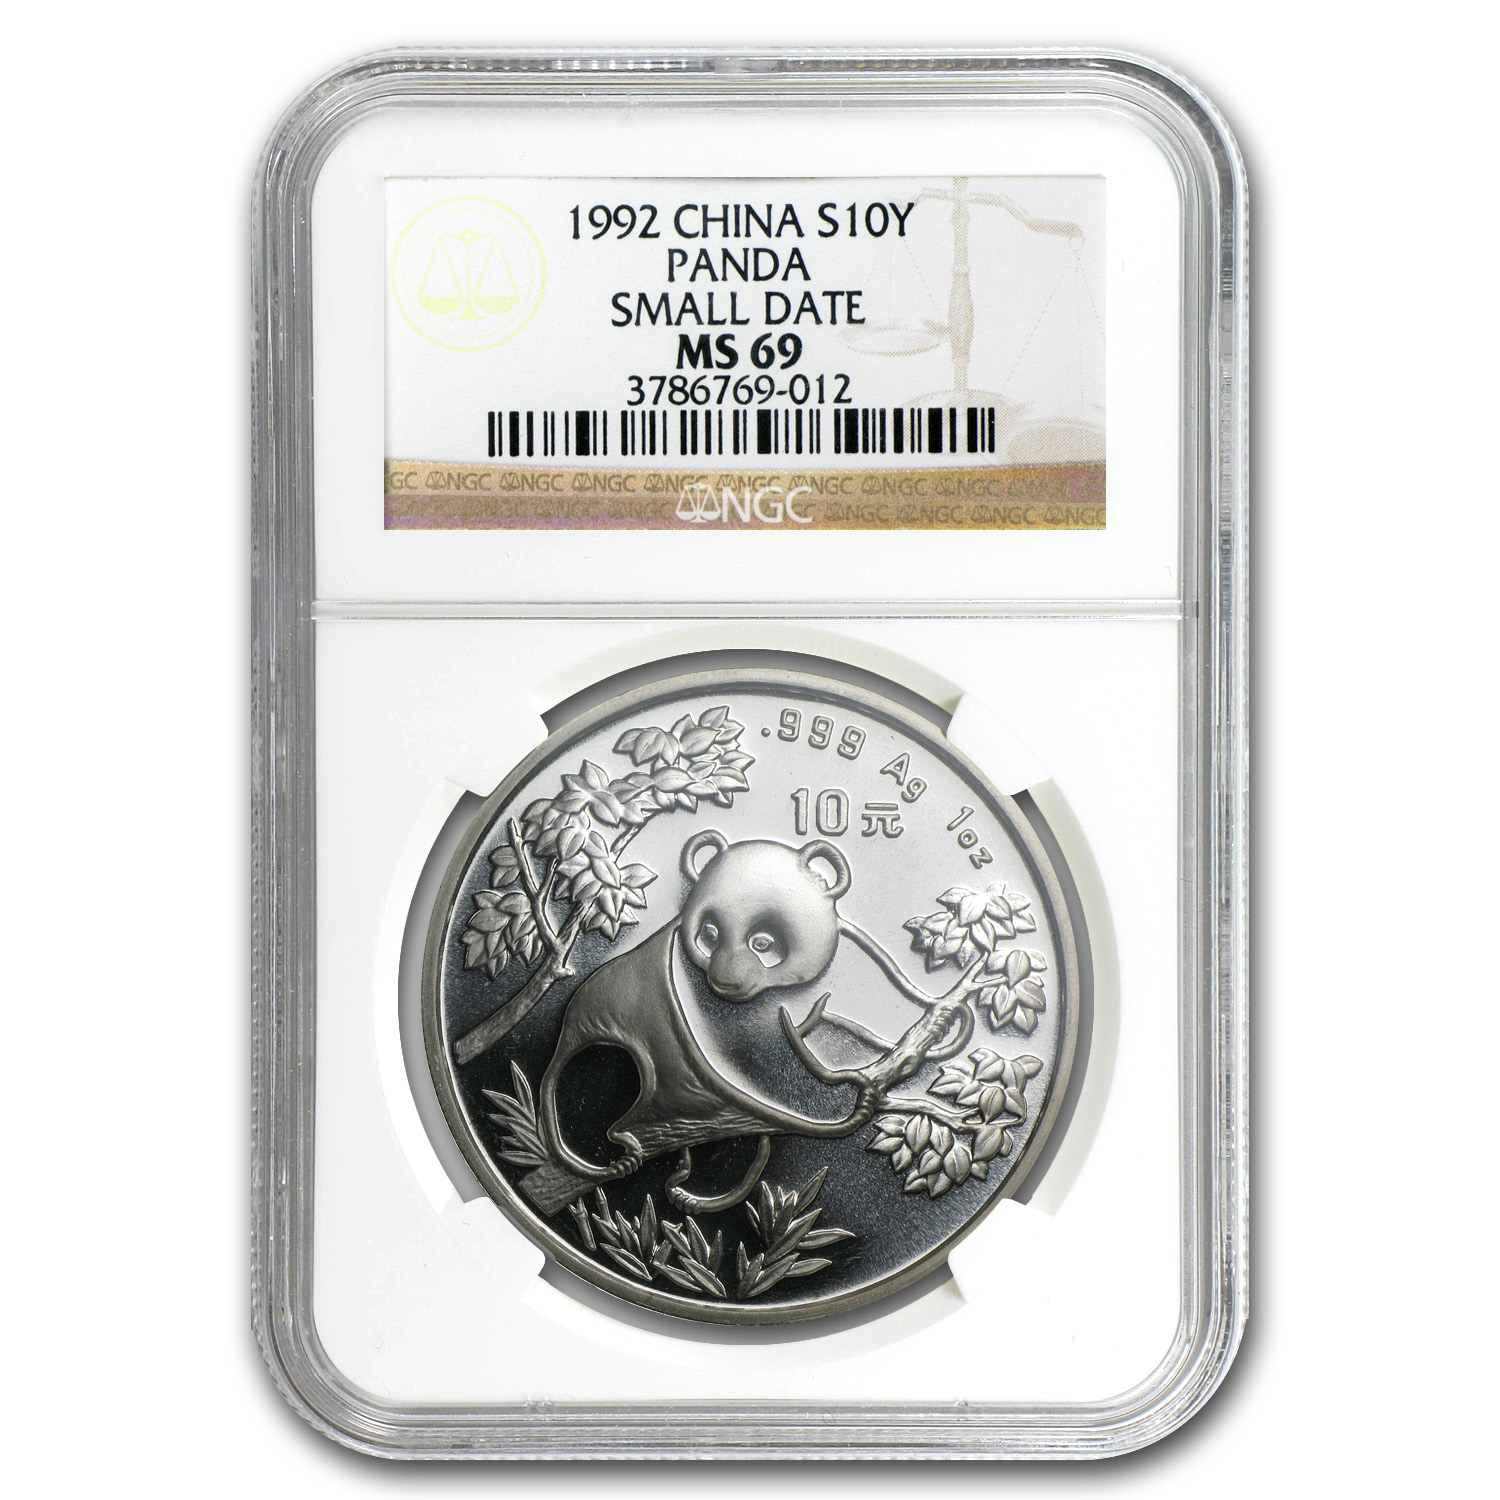 1992 China 1 oz Silver Panda MS-69 NGC (Small Date)